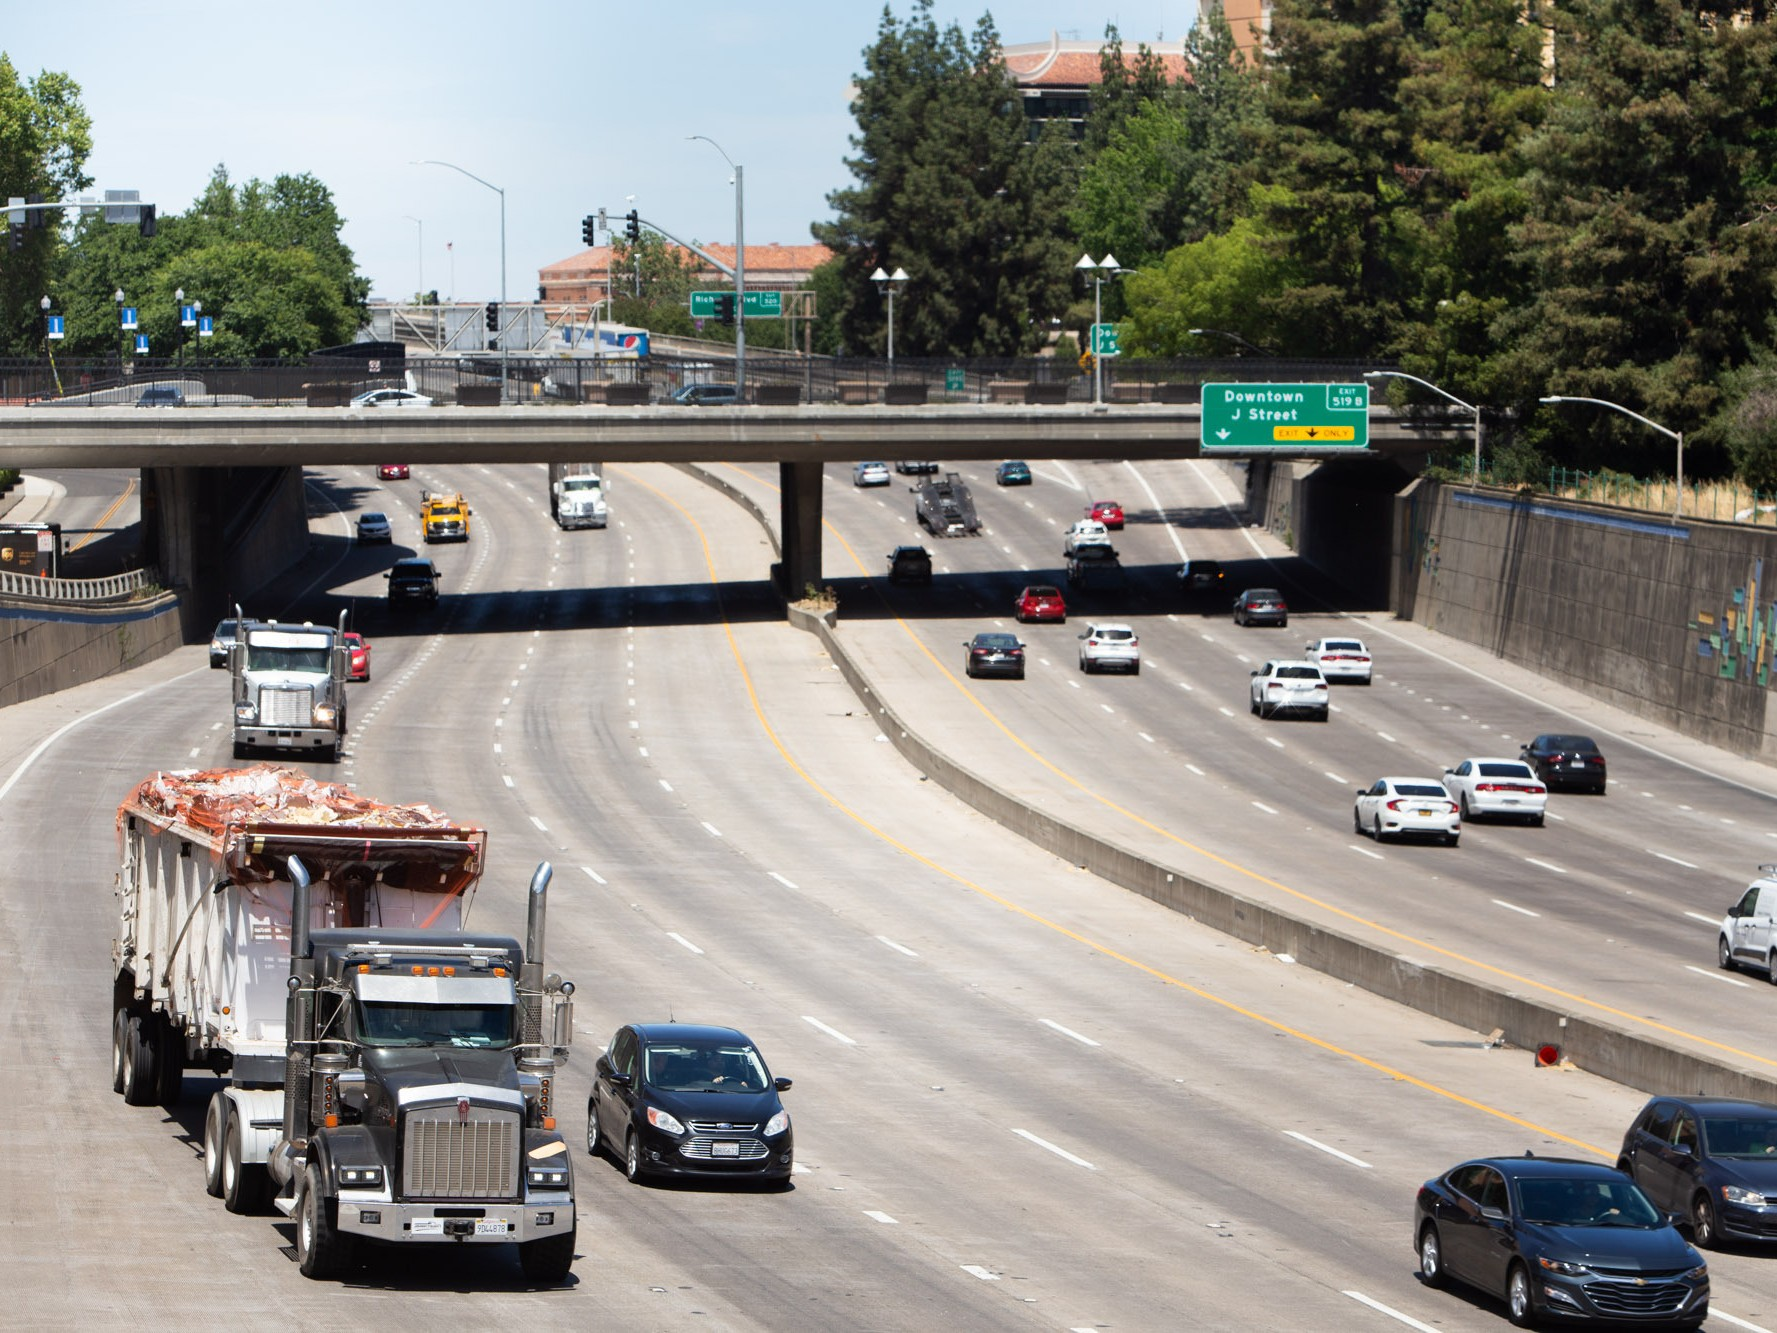 All New California Cars Trucks Must Be Zero Emission By 2035 Newsom Announces In Executive Order Capradio Org